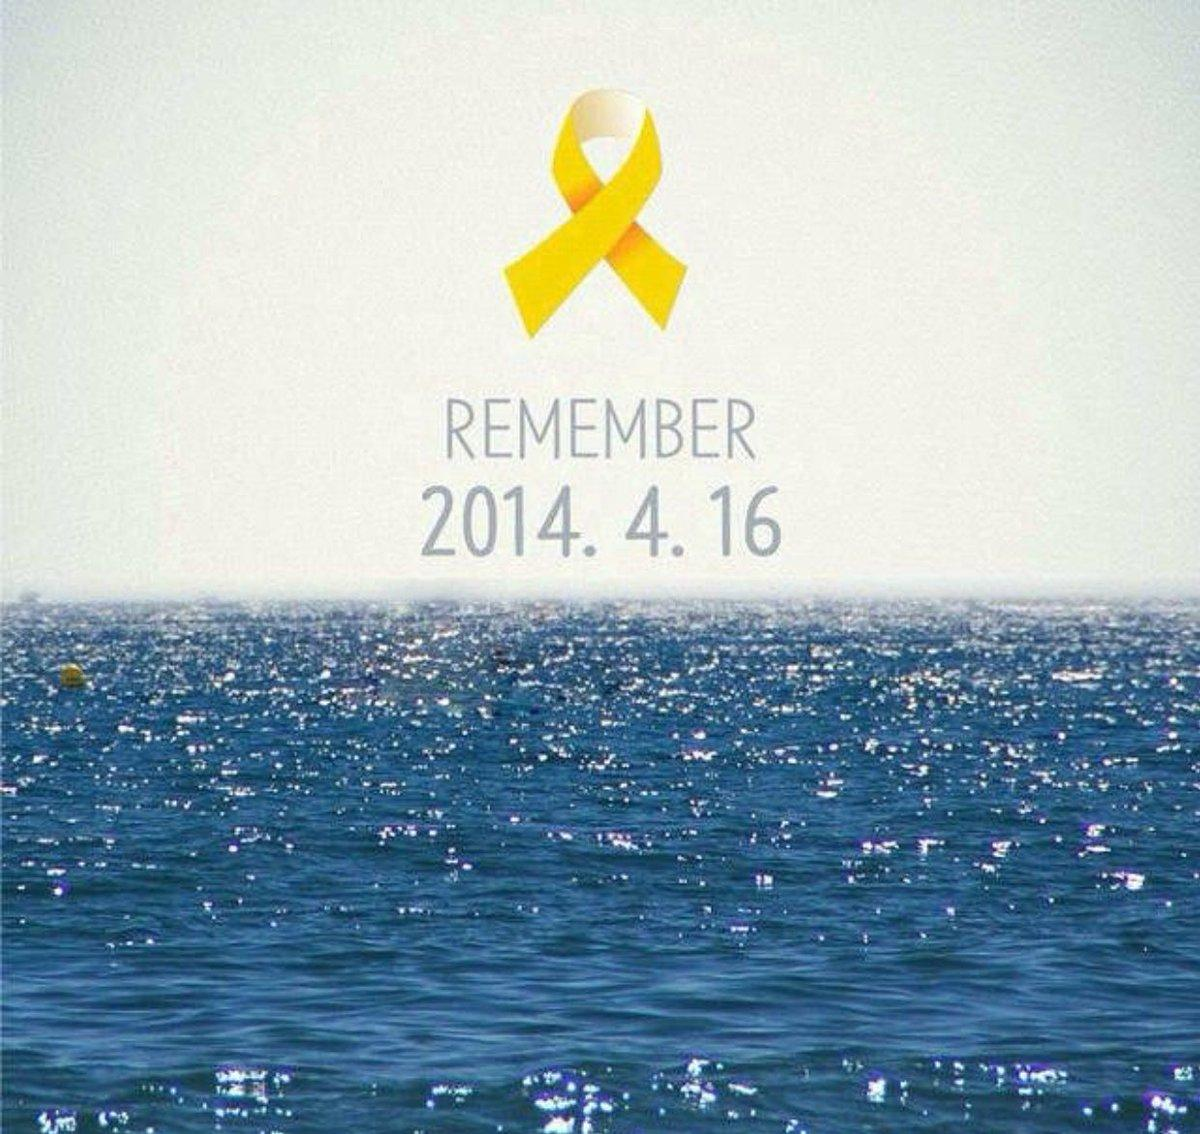 16 Idols Who Paid Their Respects to Victims of the Sewol Ferry Tragedy on its 3rd Anniversary